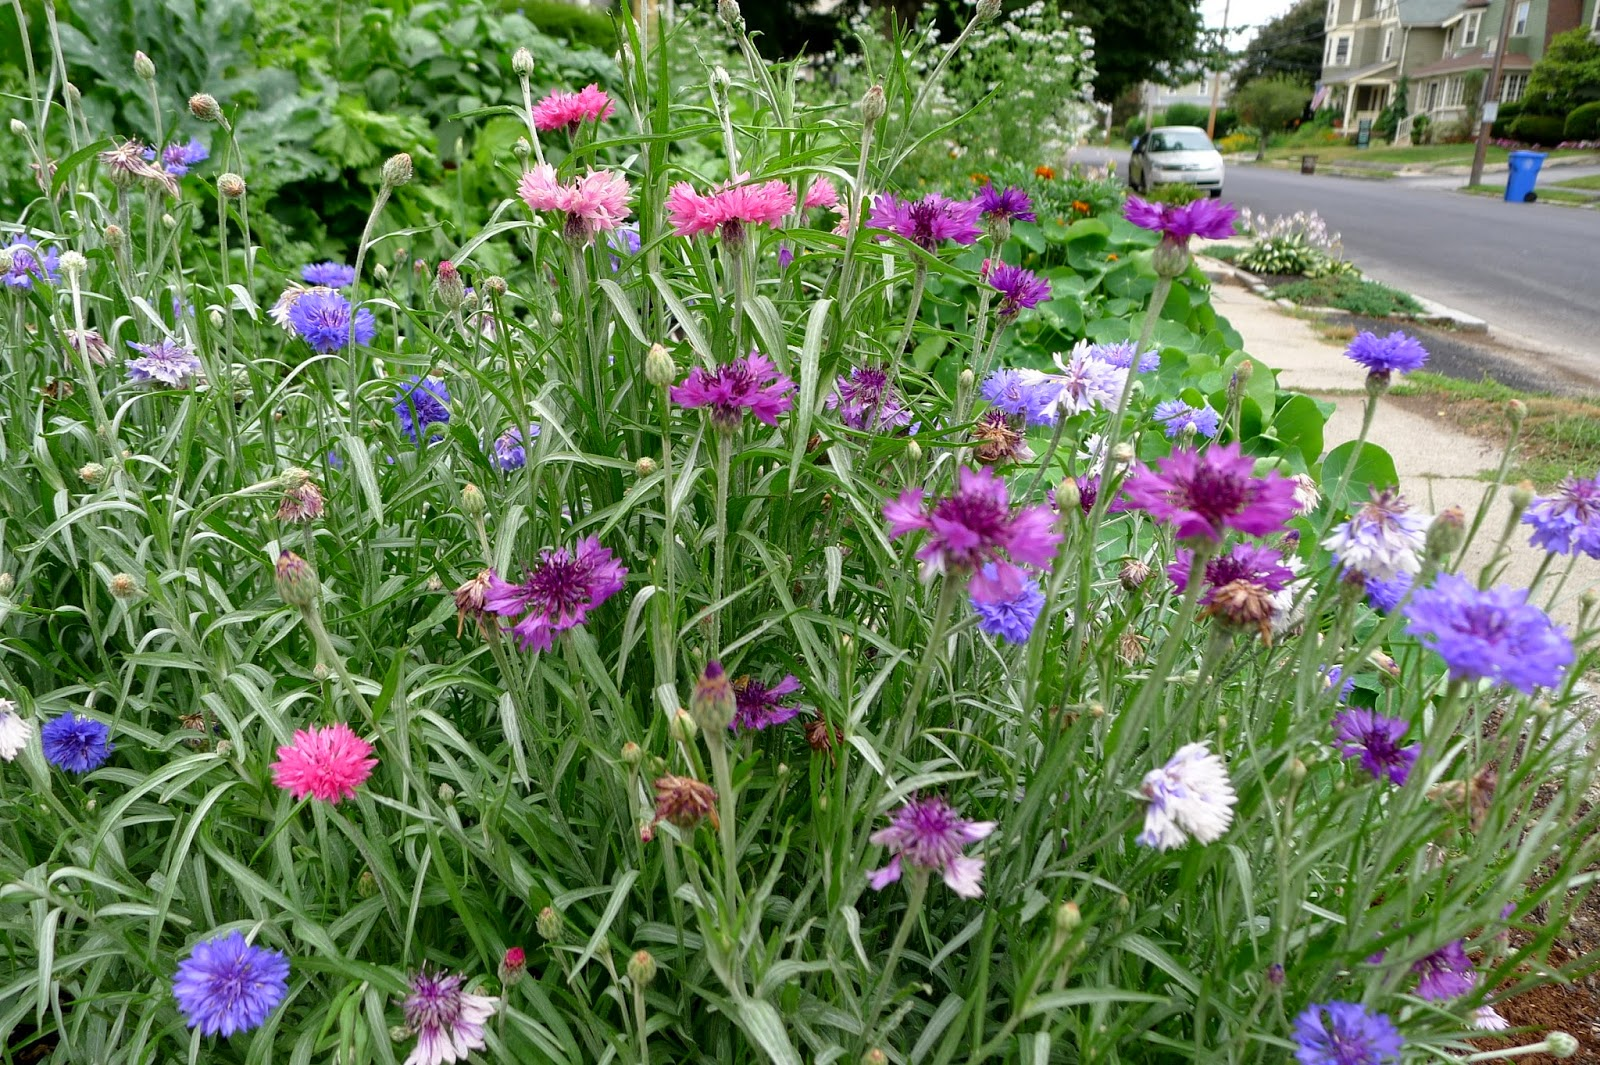 Less Noise, More Green Edible Landscape Project, Dwarf Blend Batchelor's Buttons, Centaurea cyanus, annual, edible flower